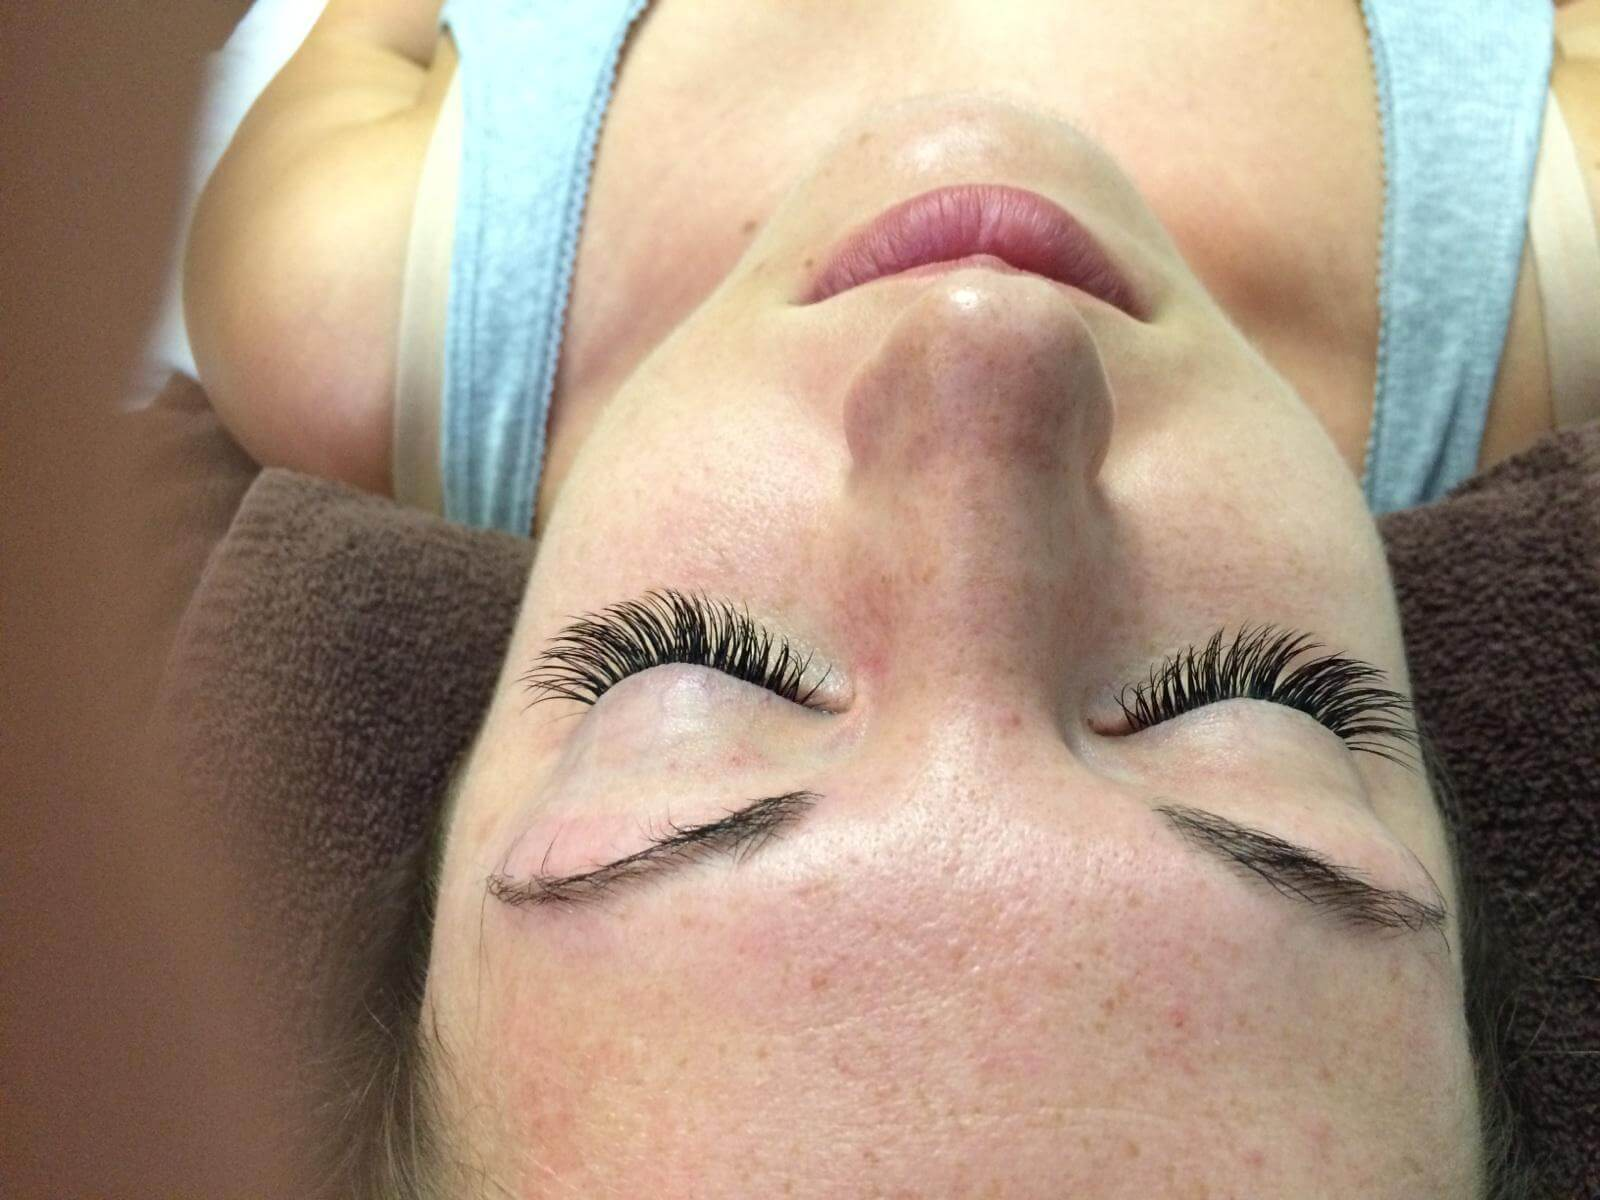 Believe Your Eyes: Lashing Out At the Myths About Eyelash Extensions